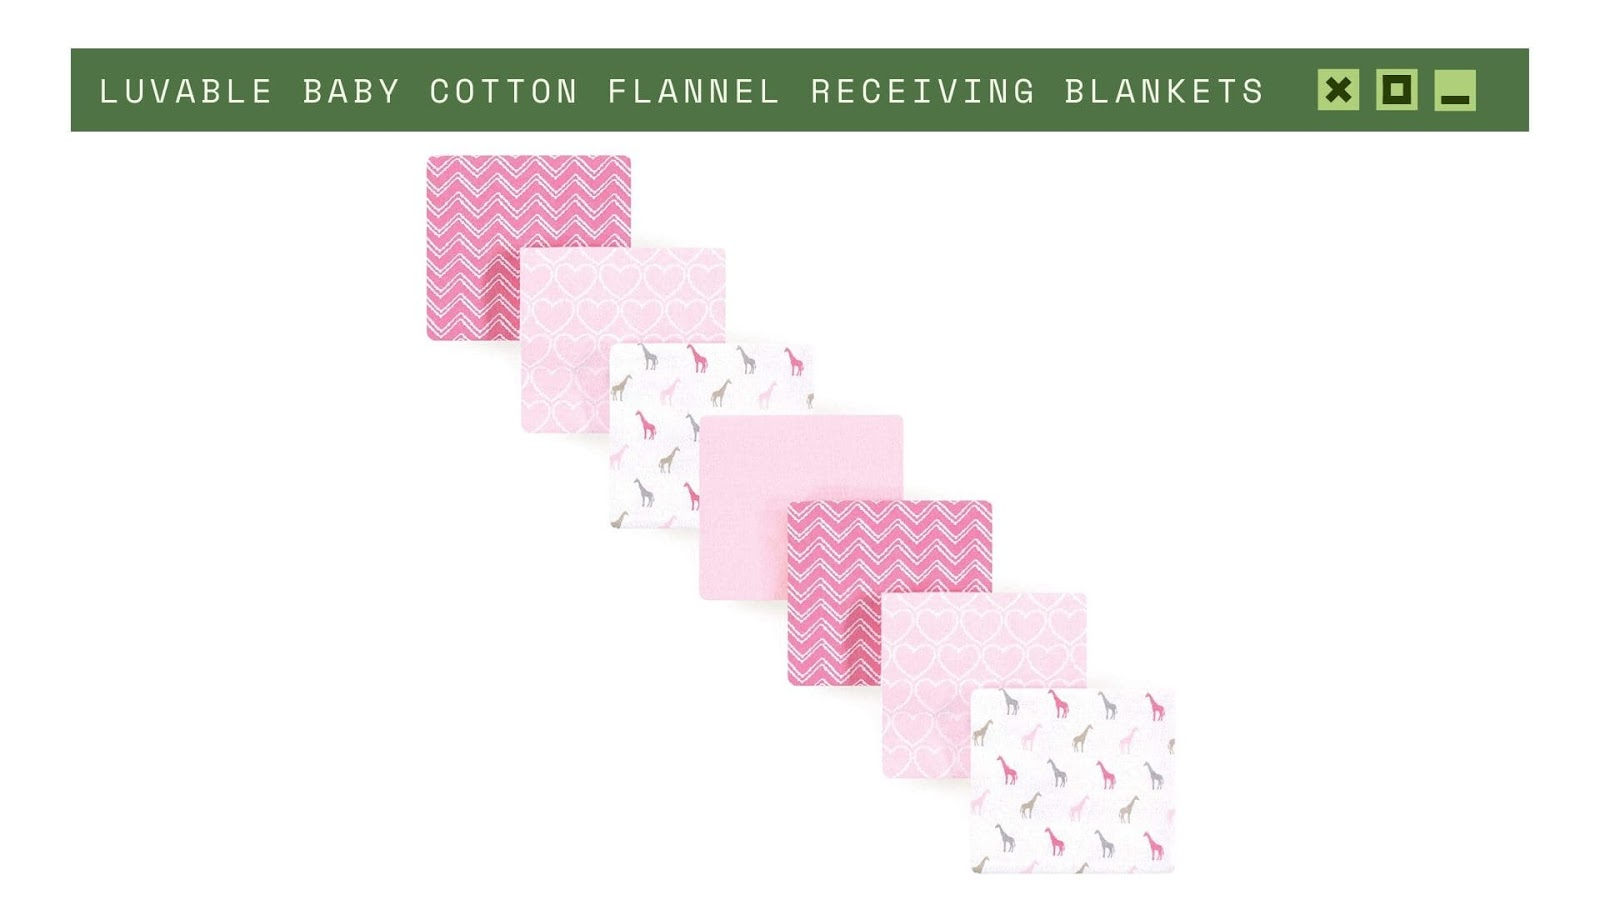 Shopping for newborn baby Luvable Blankets